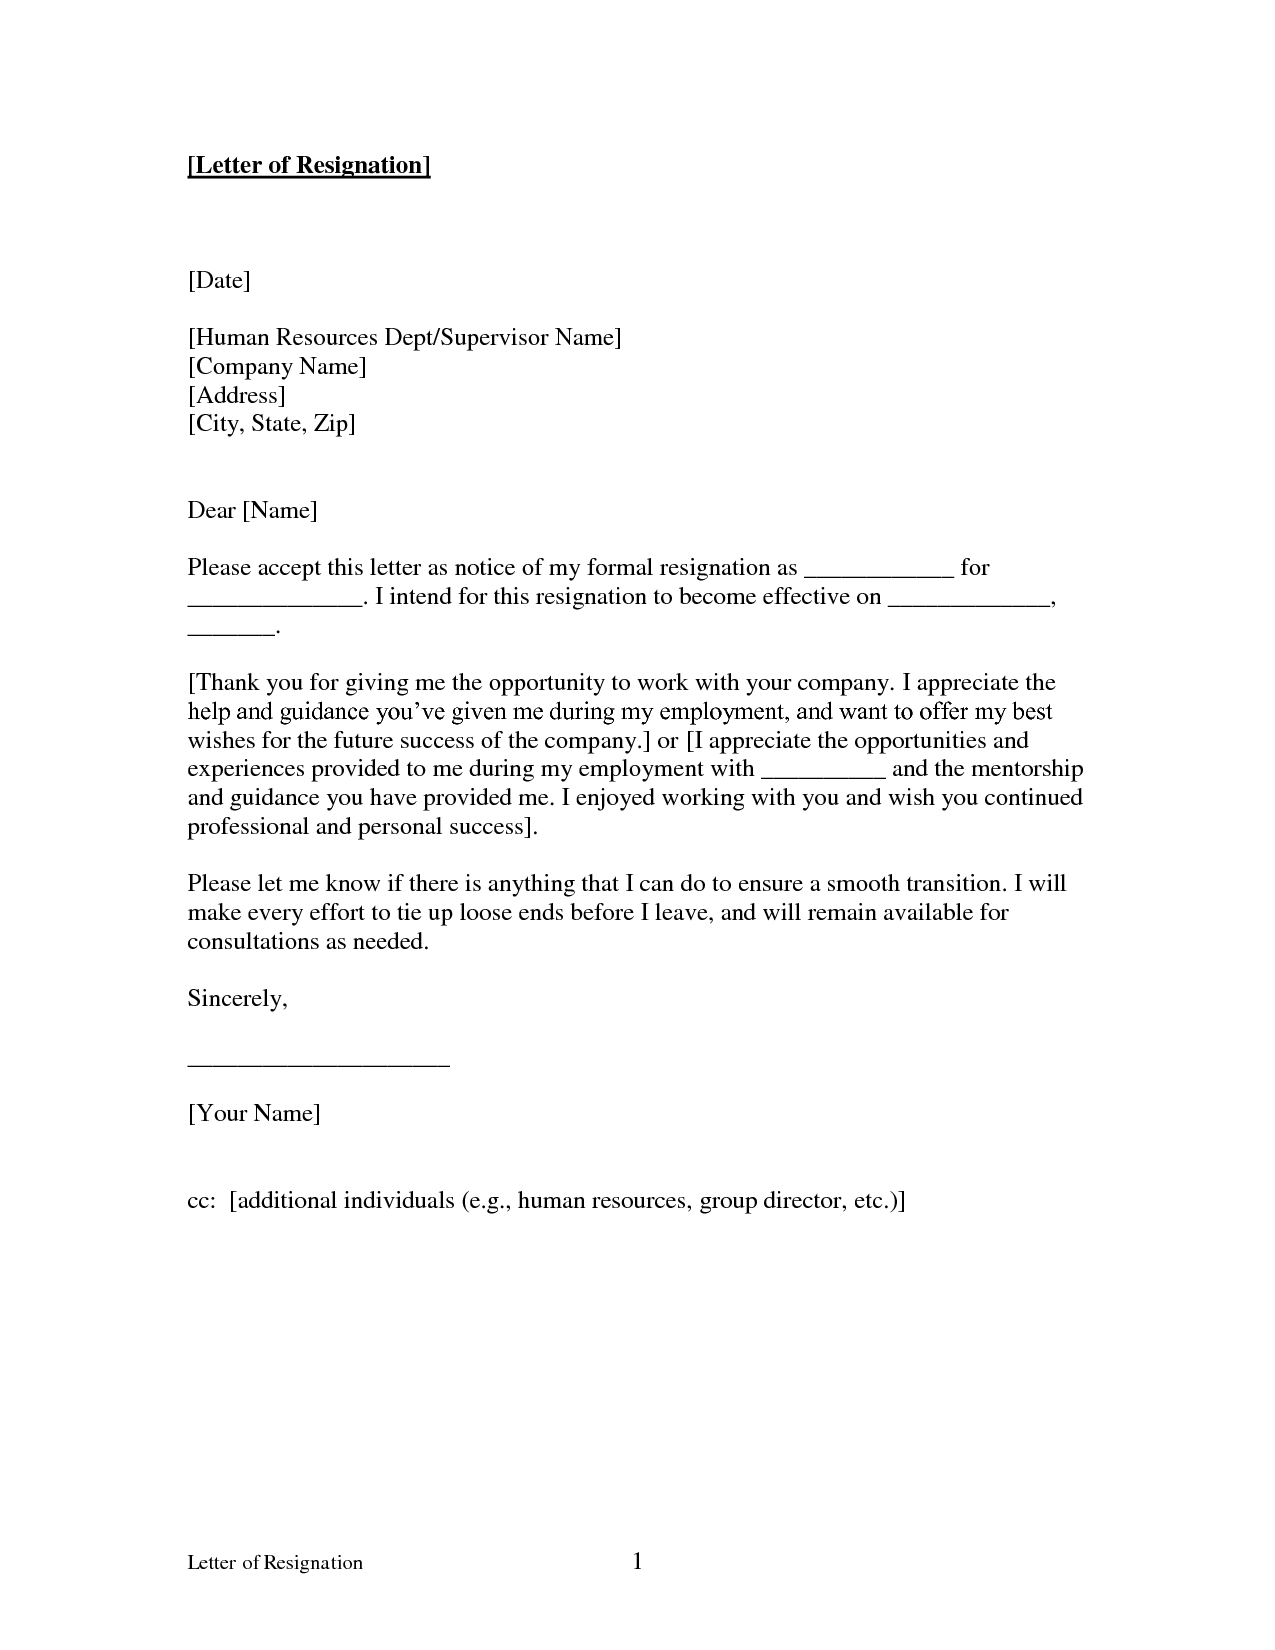 Resignation Letter Sample for Quitting Your Job Like a Pro